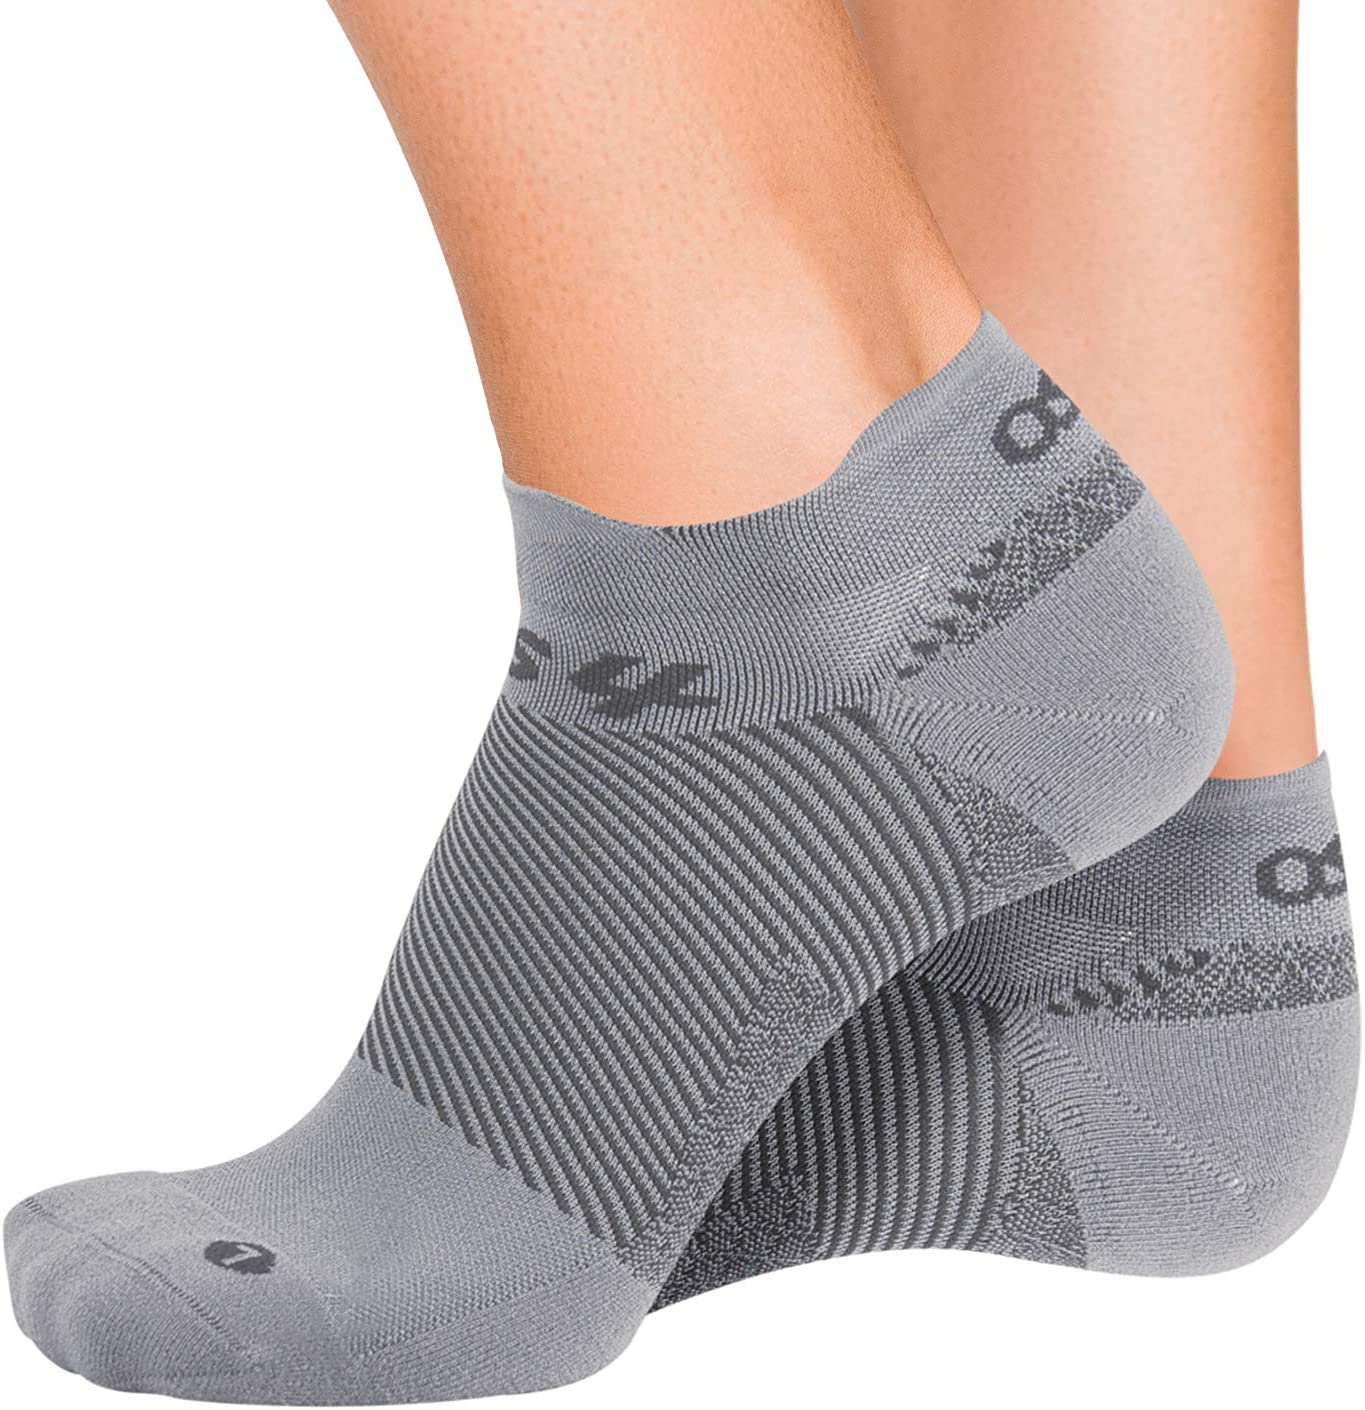 OrthoSleeve FS4 Orthotic Socks/Plantar Fasciitis Socks